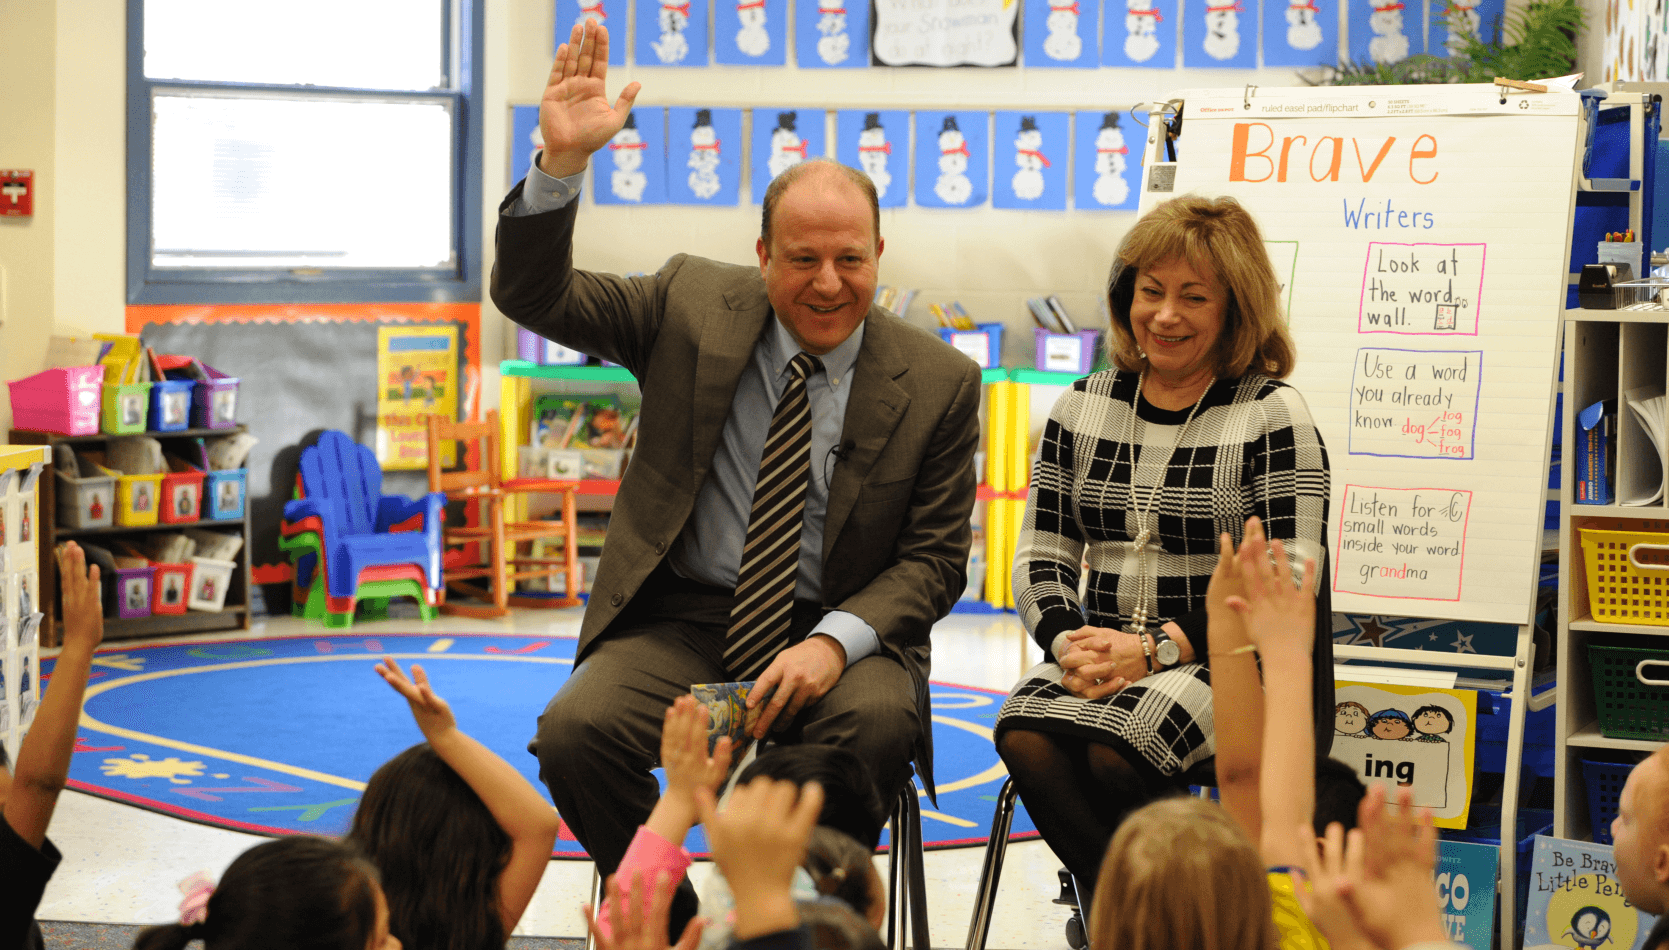 Governor Polis with Lt. Governor Primavera at a School